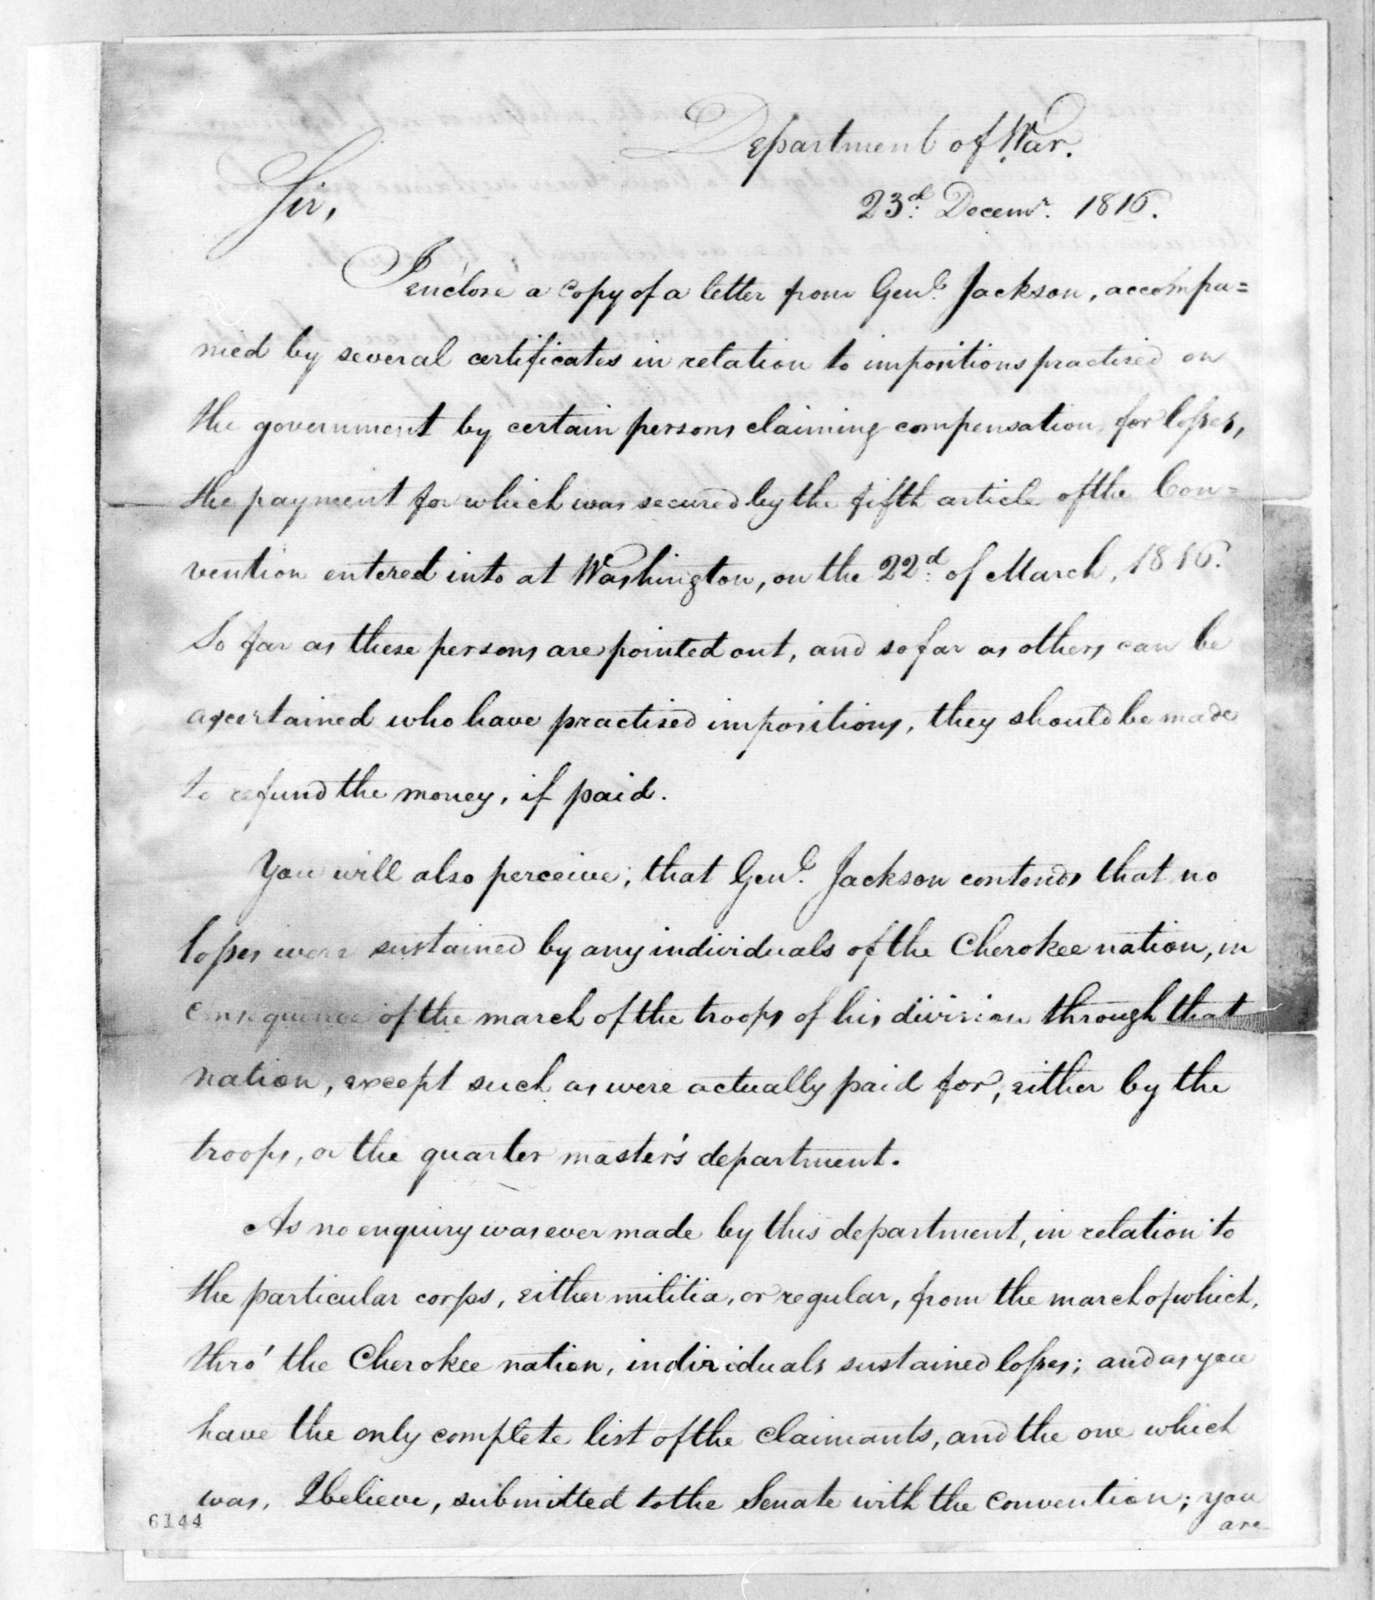 George Graham to Return Jonathan Meigs, December 23, 1816